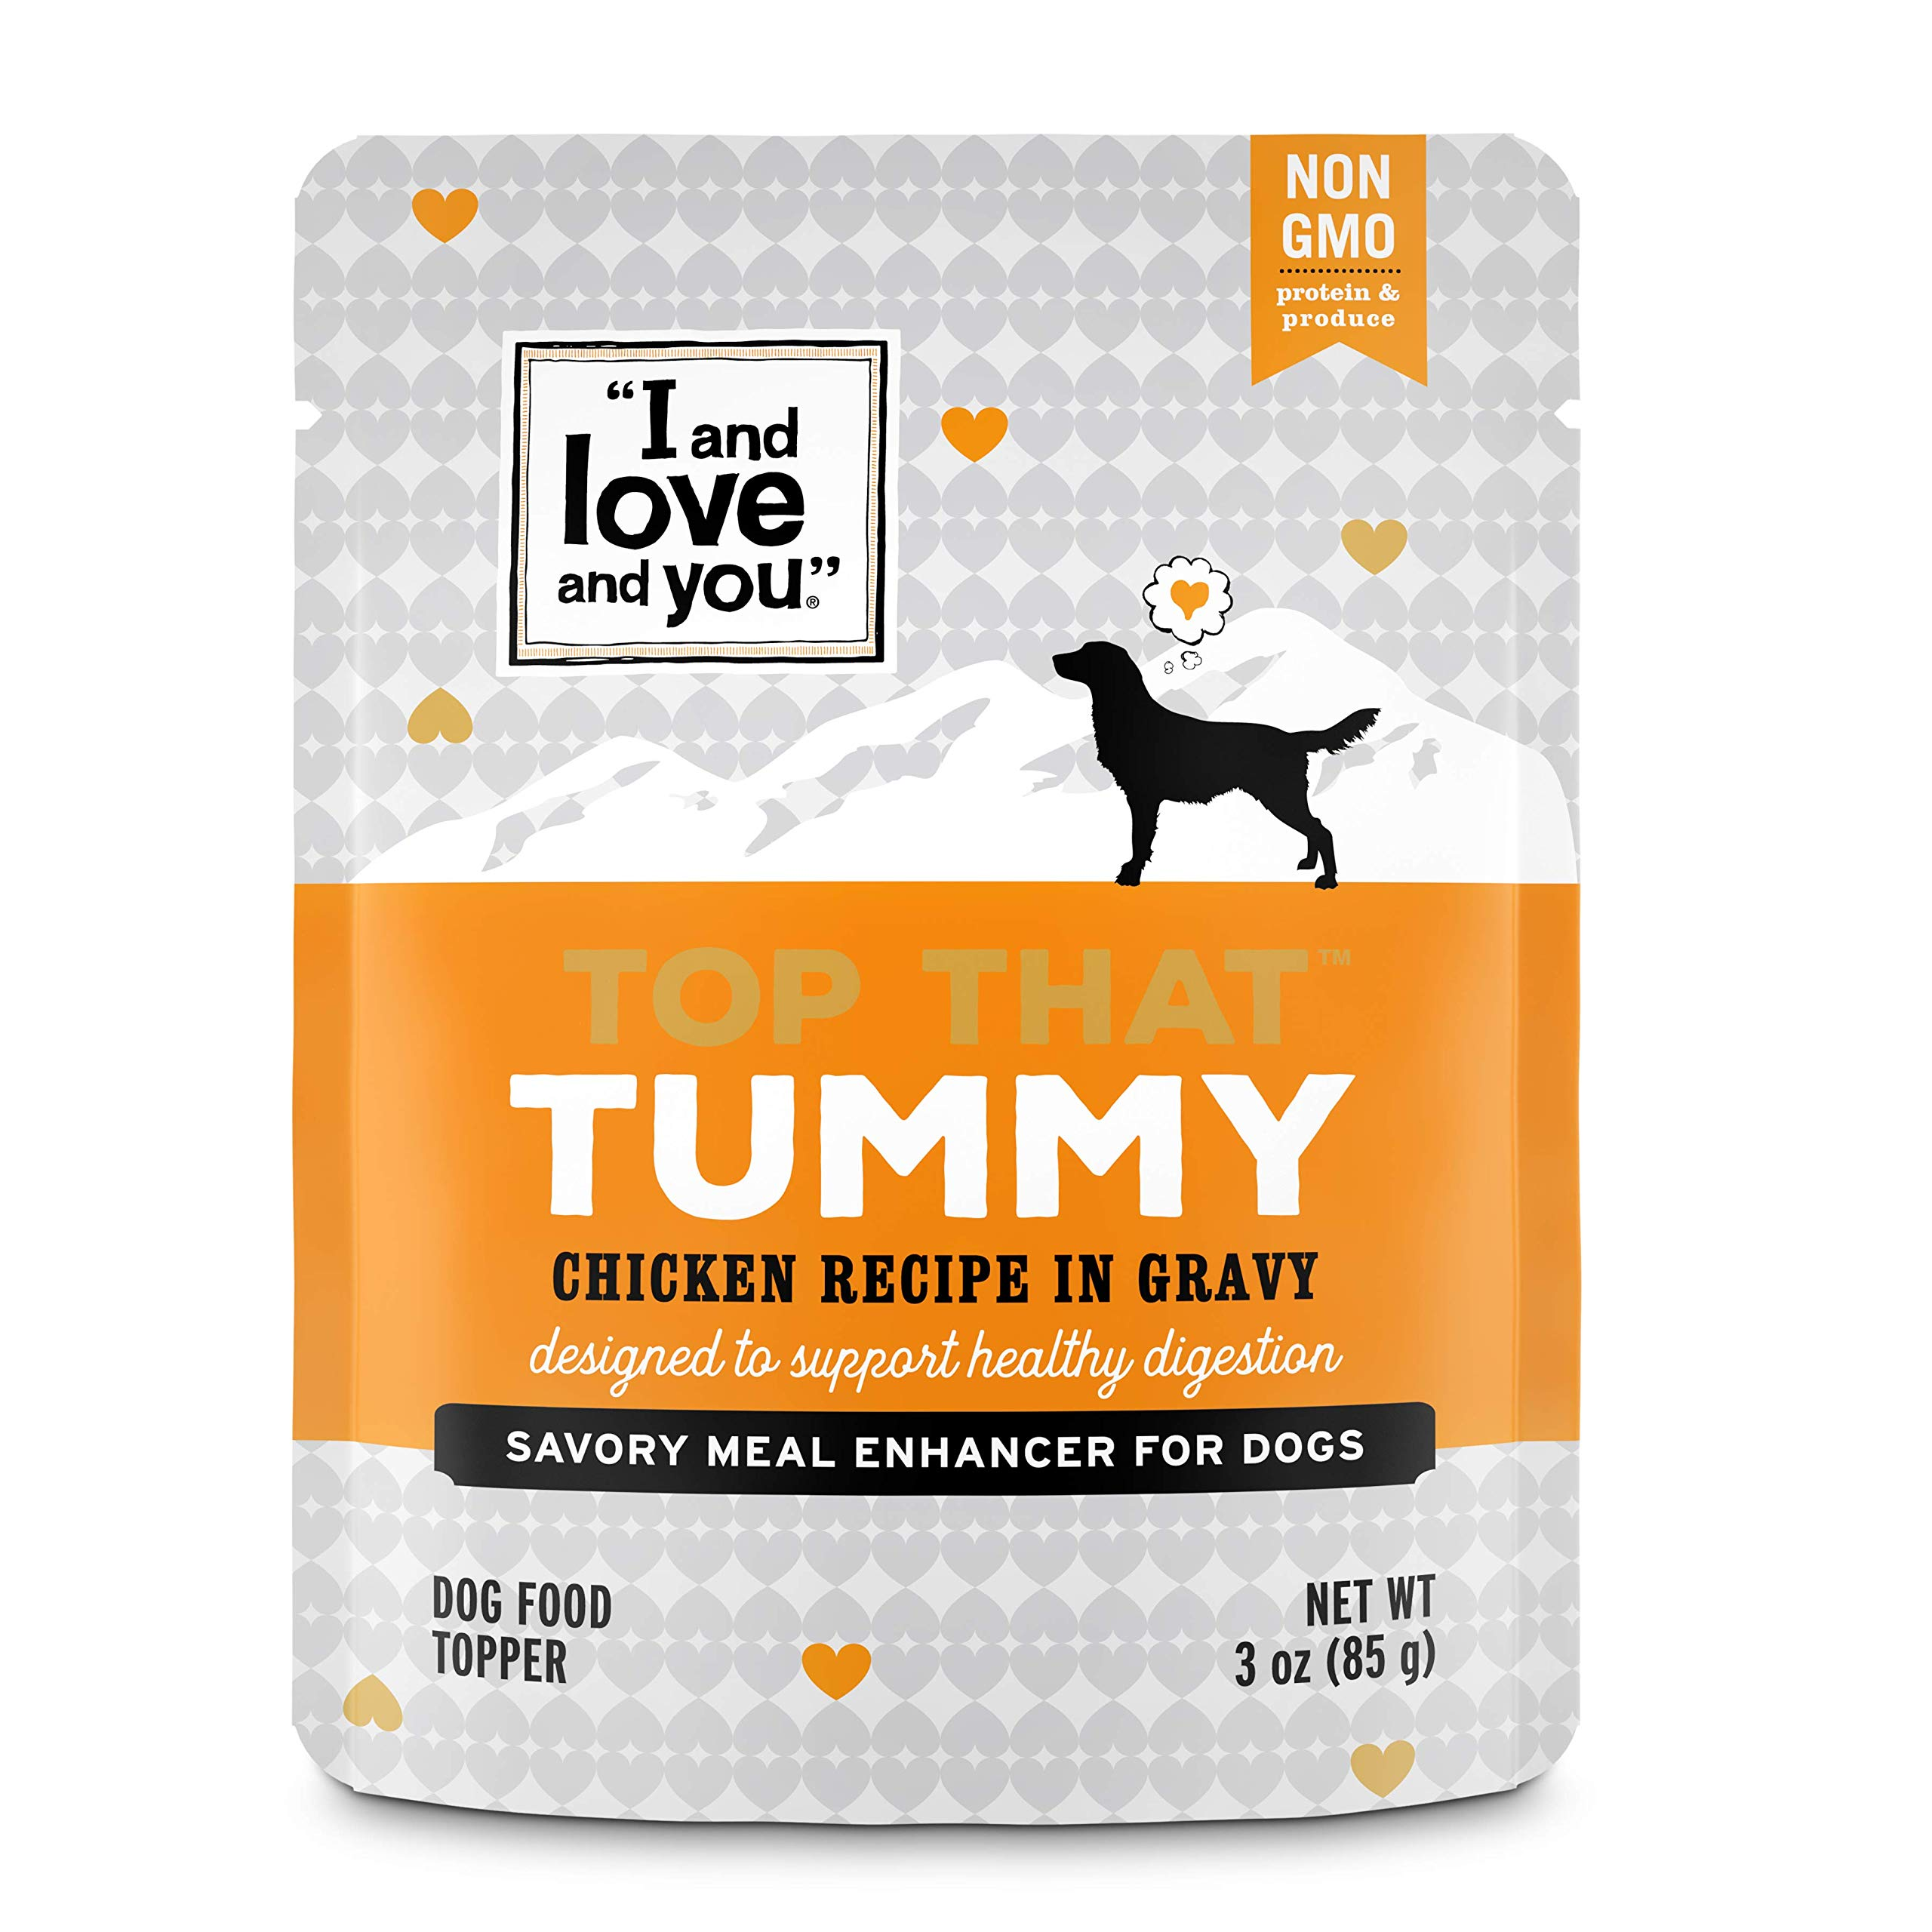 ''I and love and you'' Top That Tummy Wet Dog Food Pouch, Chicken Recipe in Gravy, 3oz, Pack of 12 by I and love and you